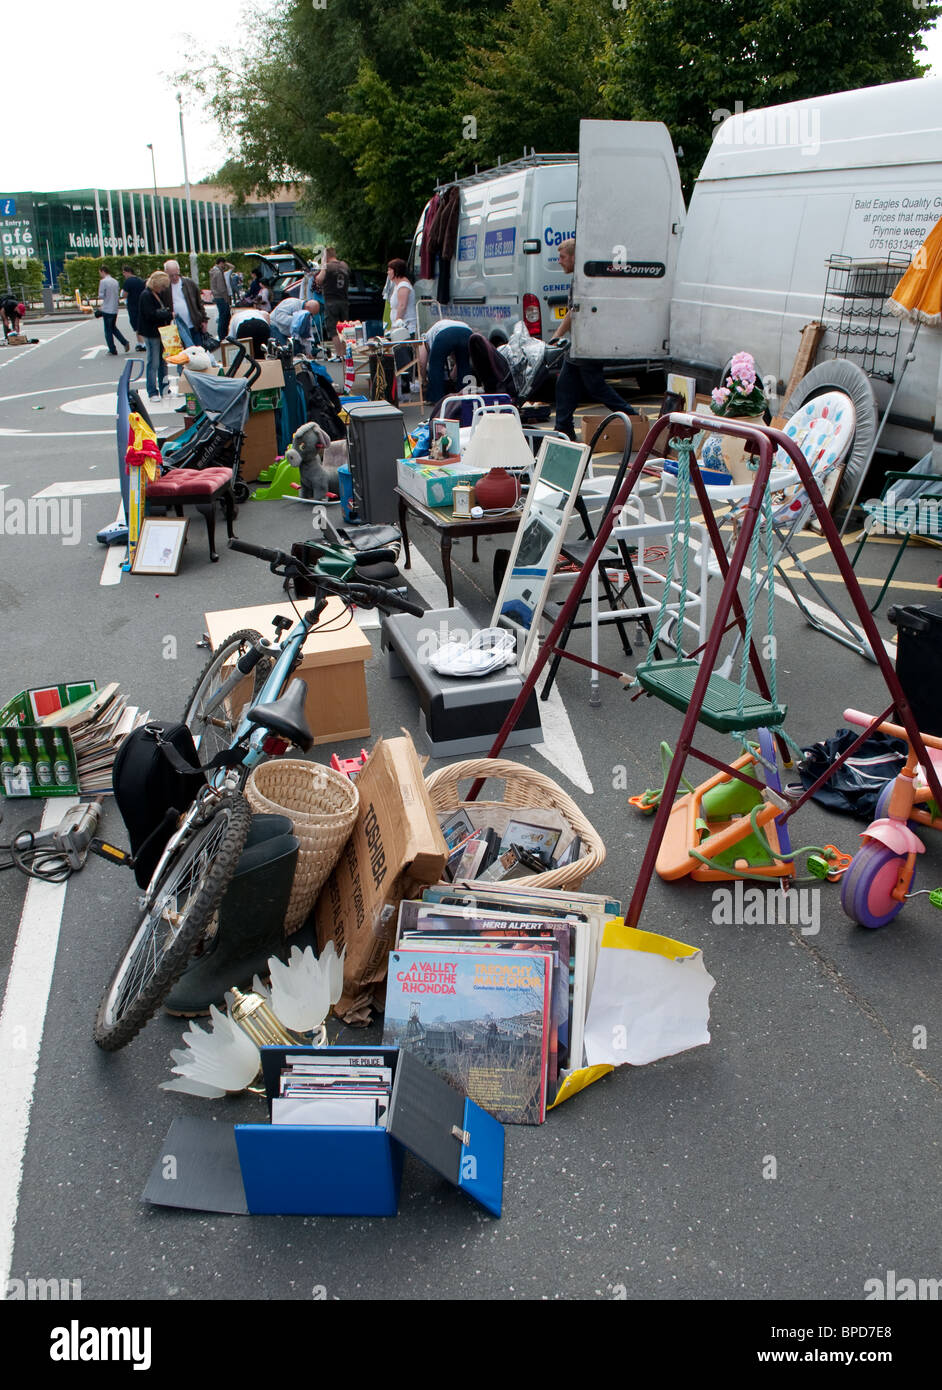 items for sale at a car boot sale in warrington, england, uk - Stock Image